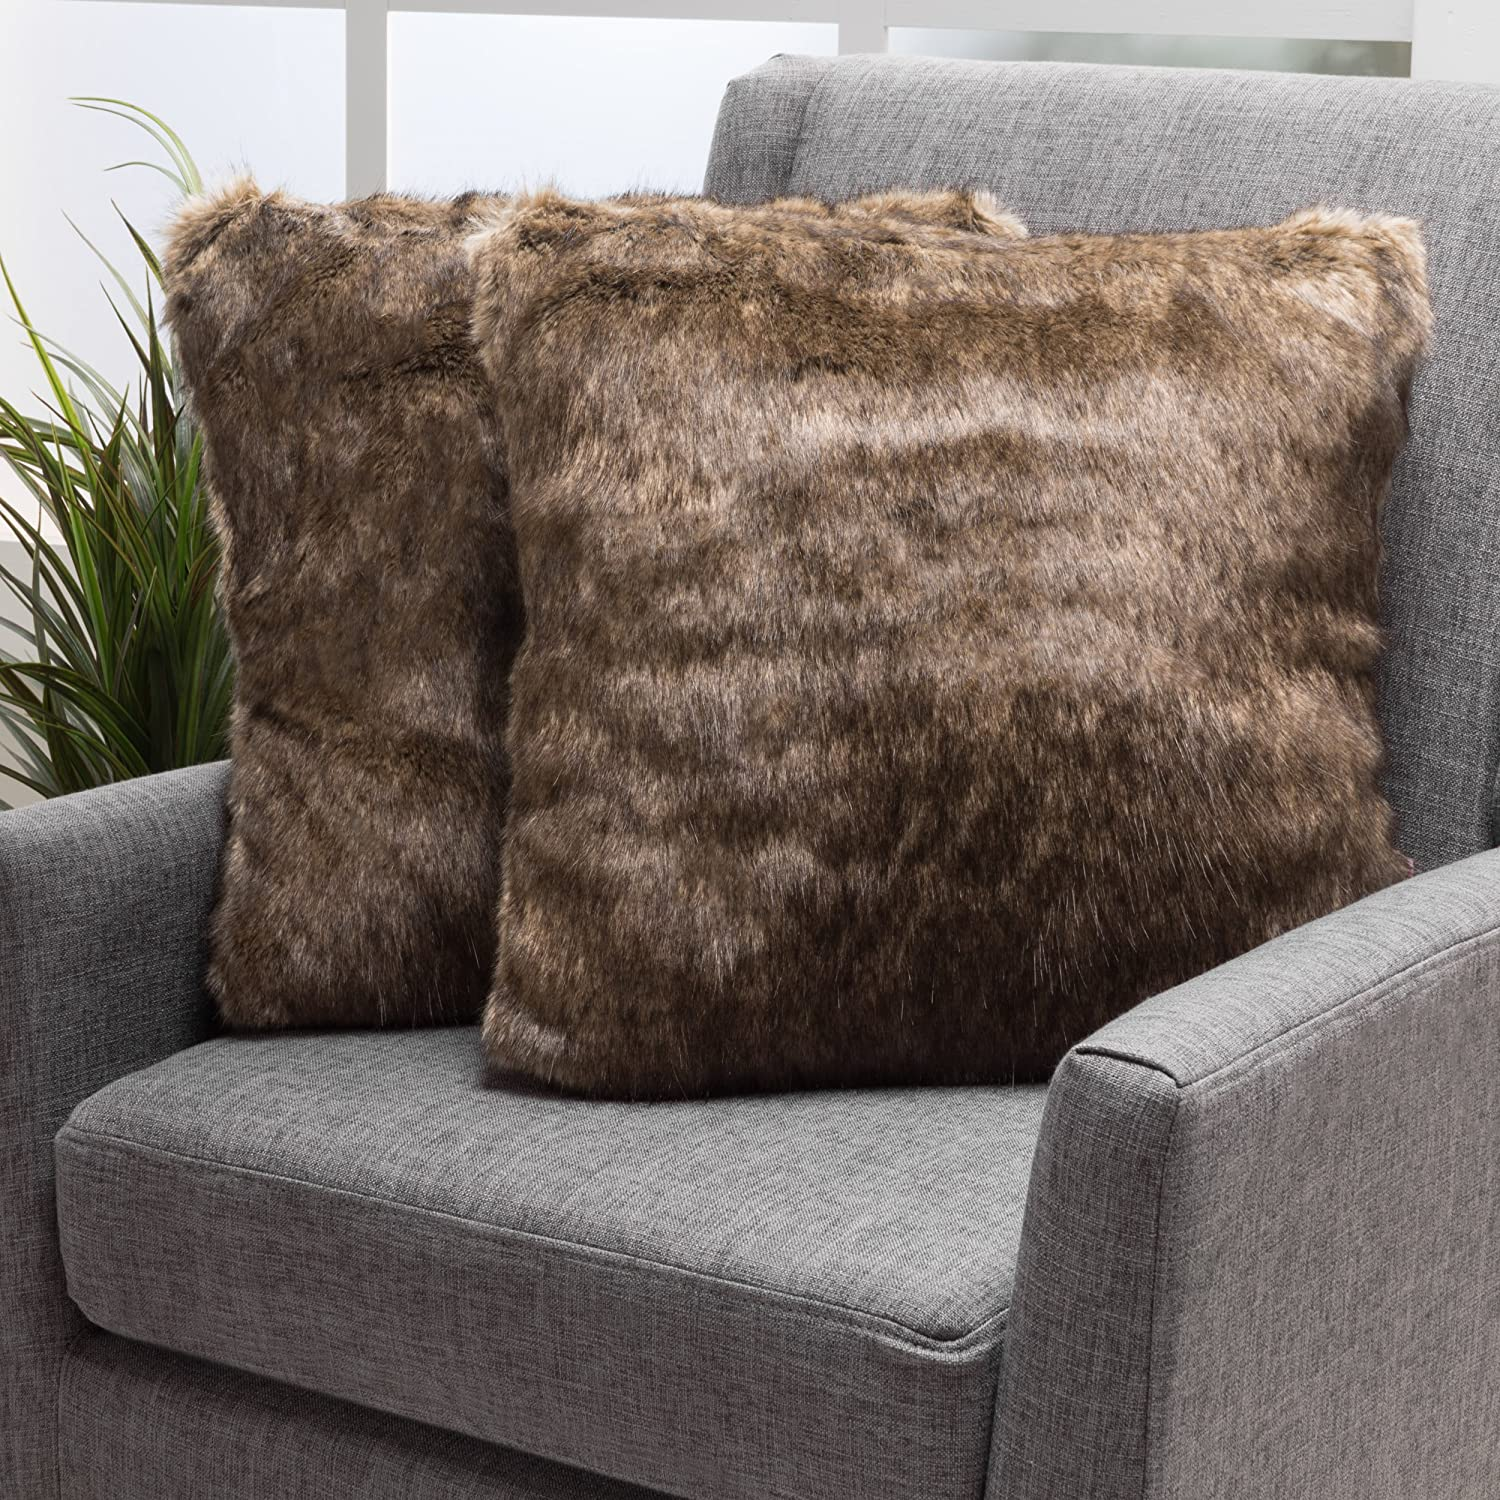 GDF Studio 299802 There's Nothing Quite Like the Feel and Feather-Soft Faux Fur Decorative Pillows for a Couch Add a Nice Touch to Your Living Room Dé Thes Dark Brown Fabric Throw (Set of 2) | Ideal Bedroom